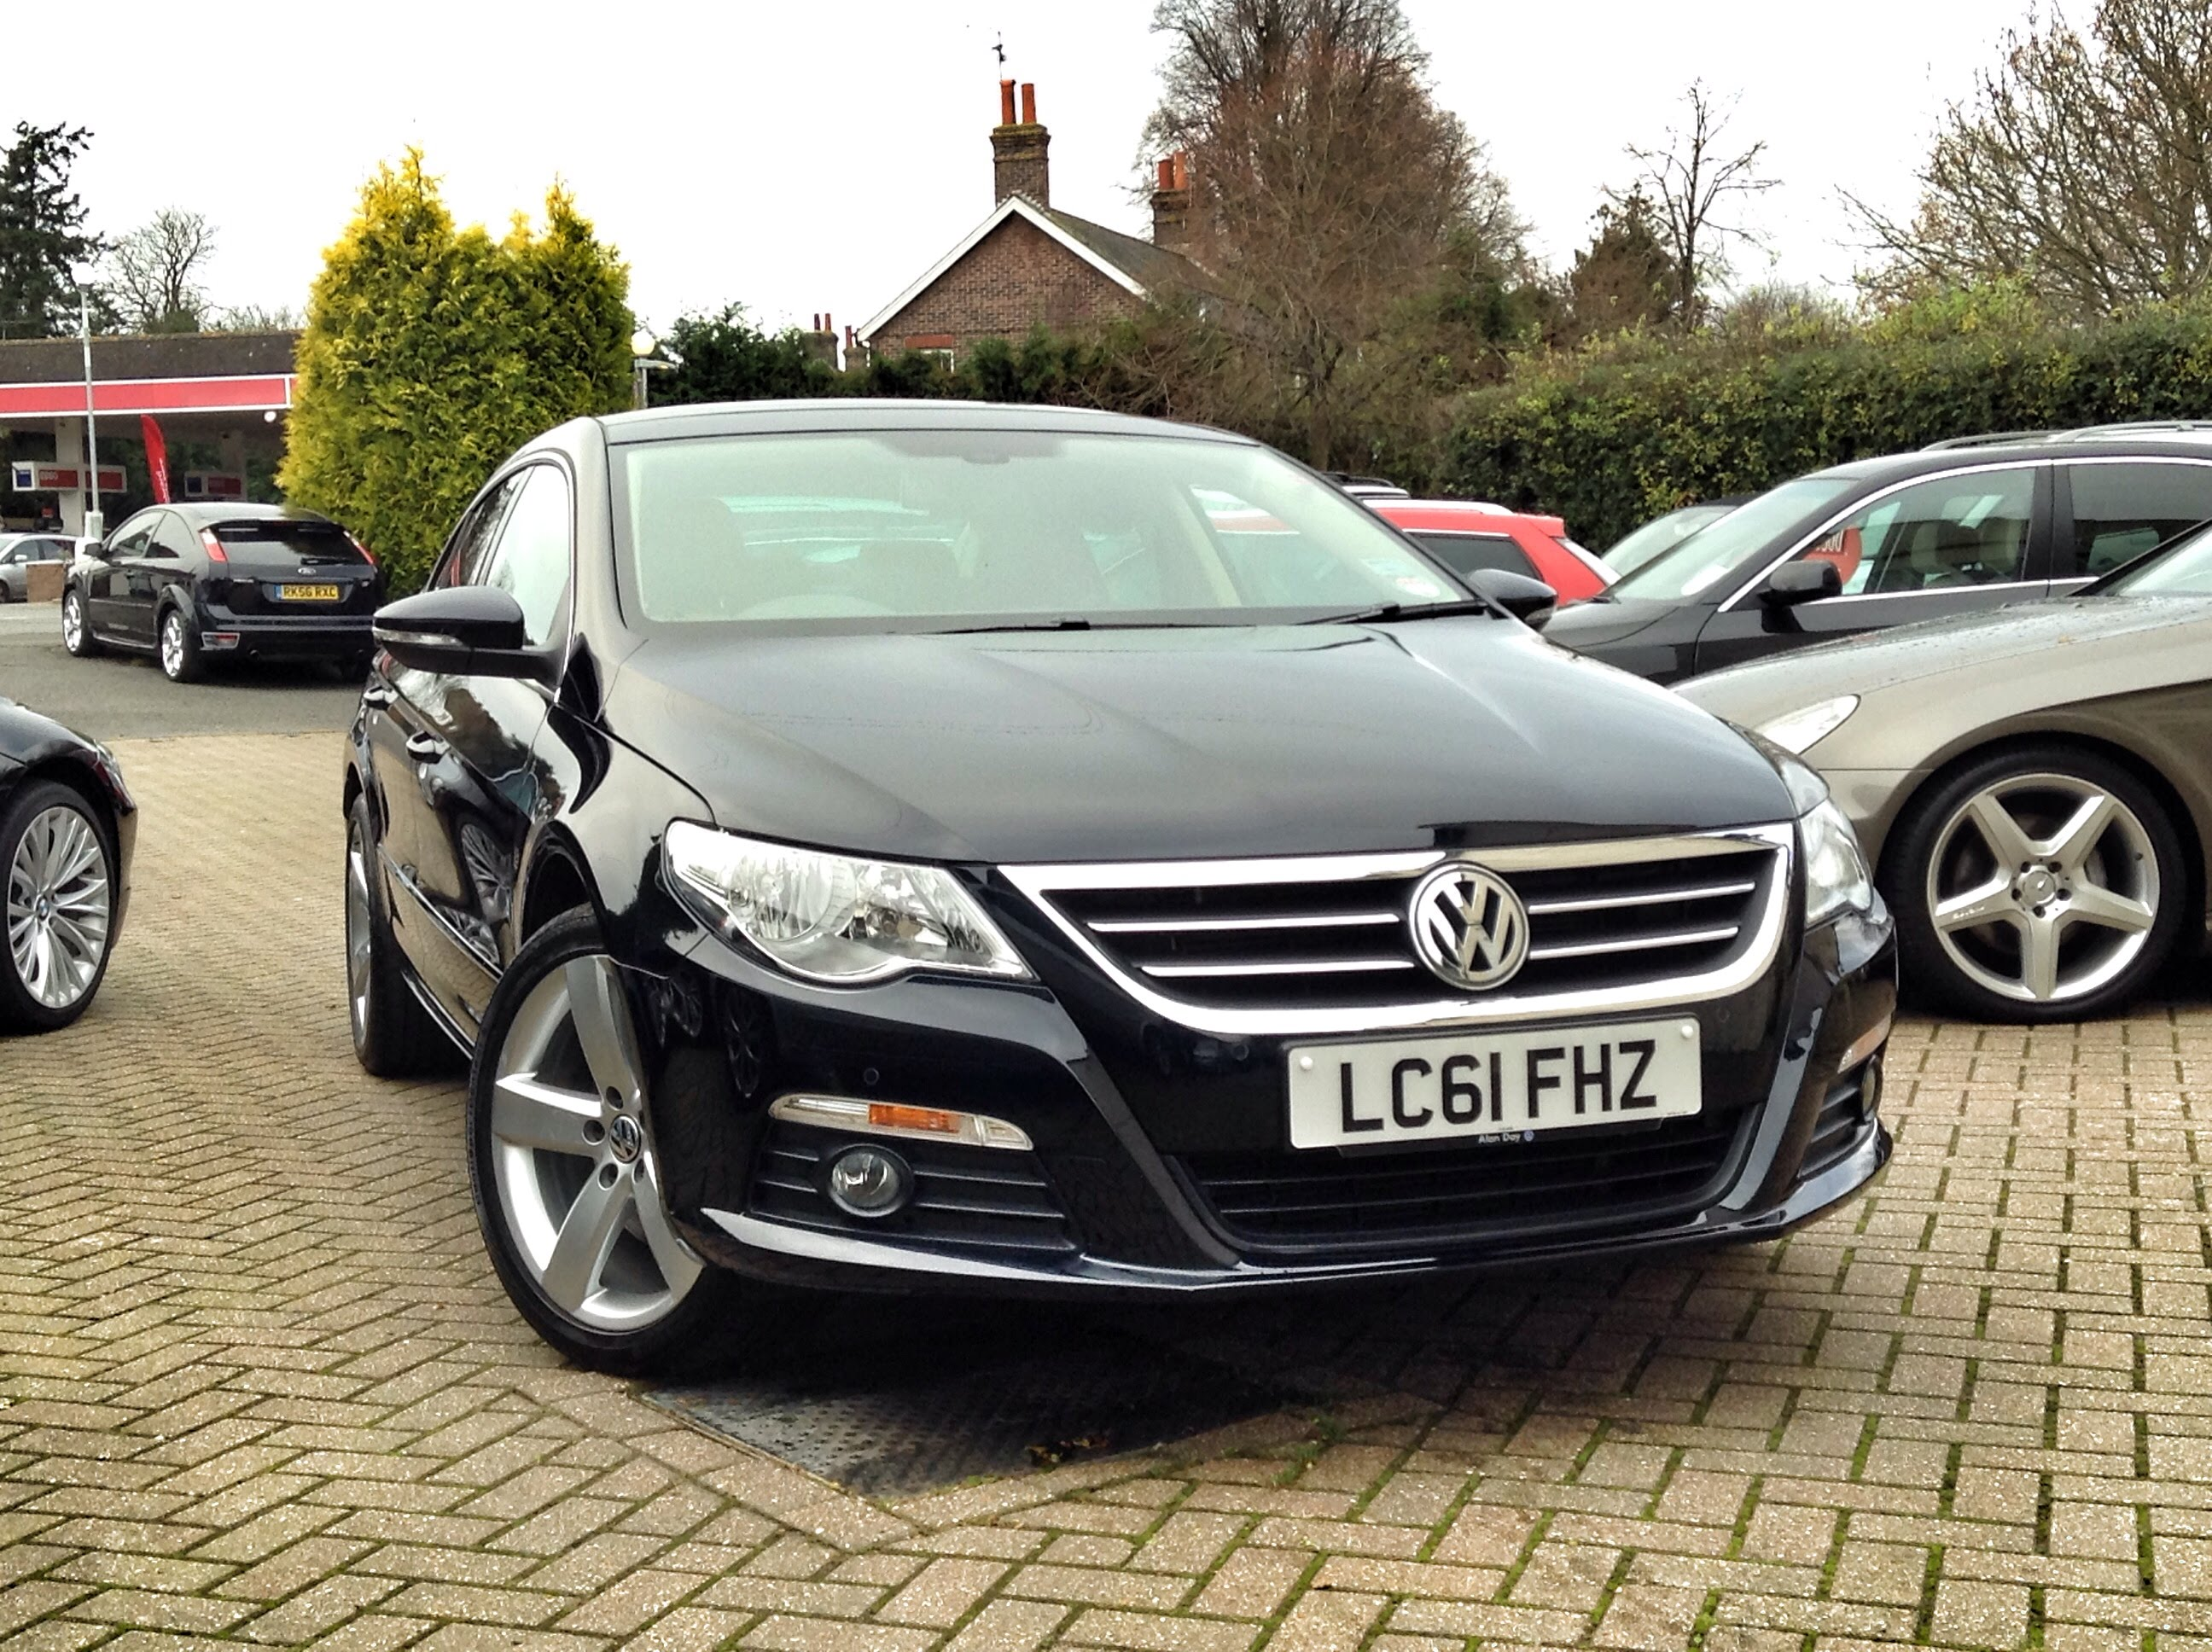 volkswagen passat cc 2 0tdi bluemotion tech cc for sale at cmc cars near brighton sus youtube